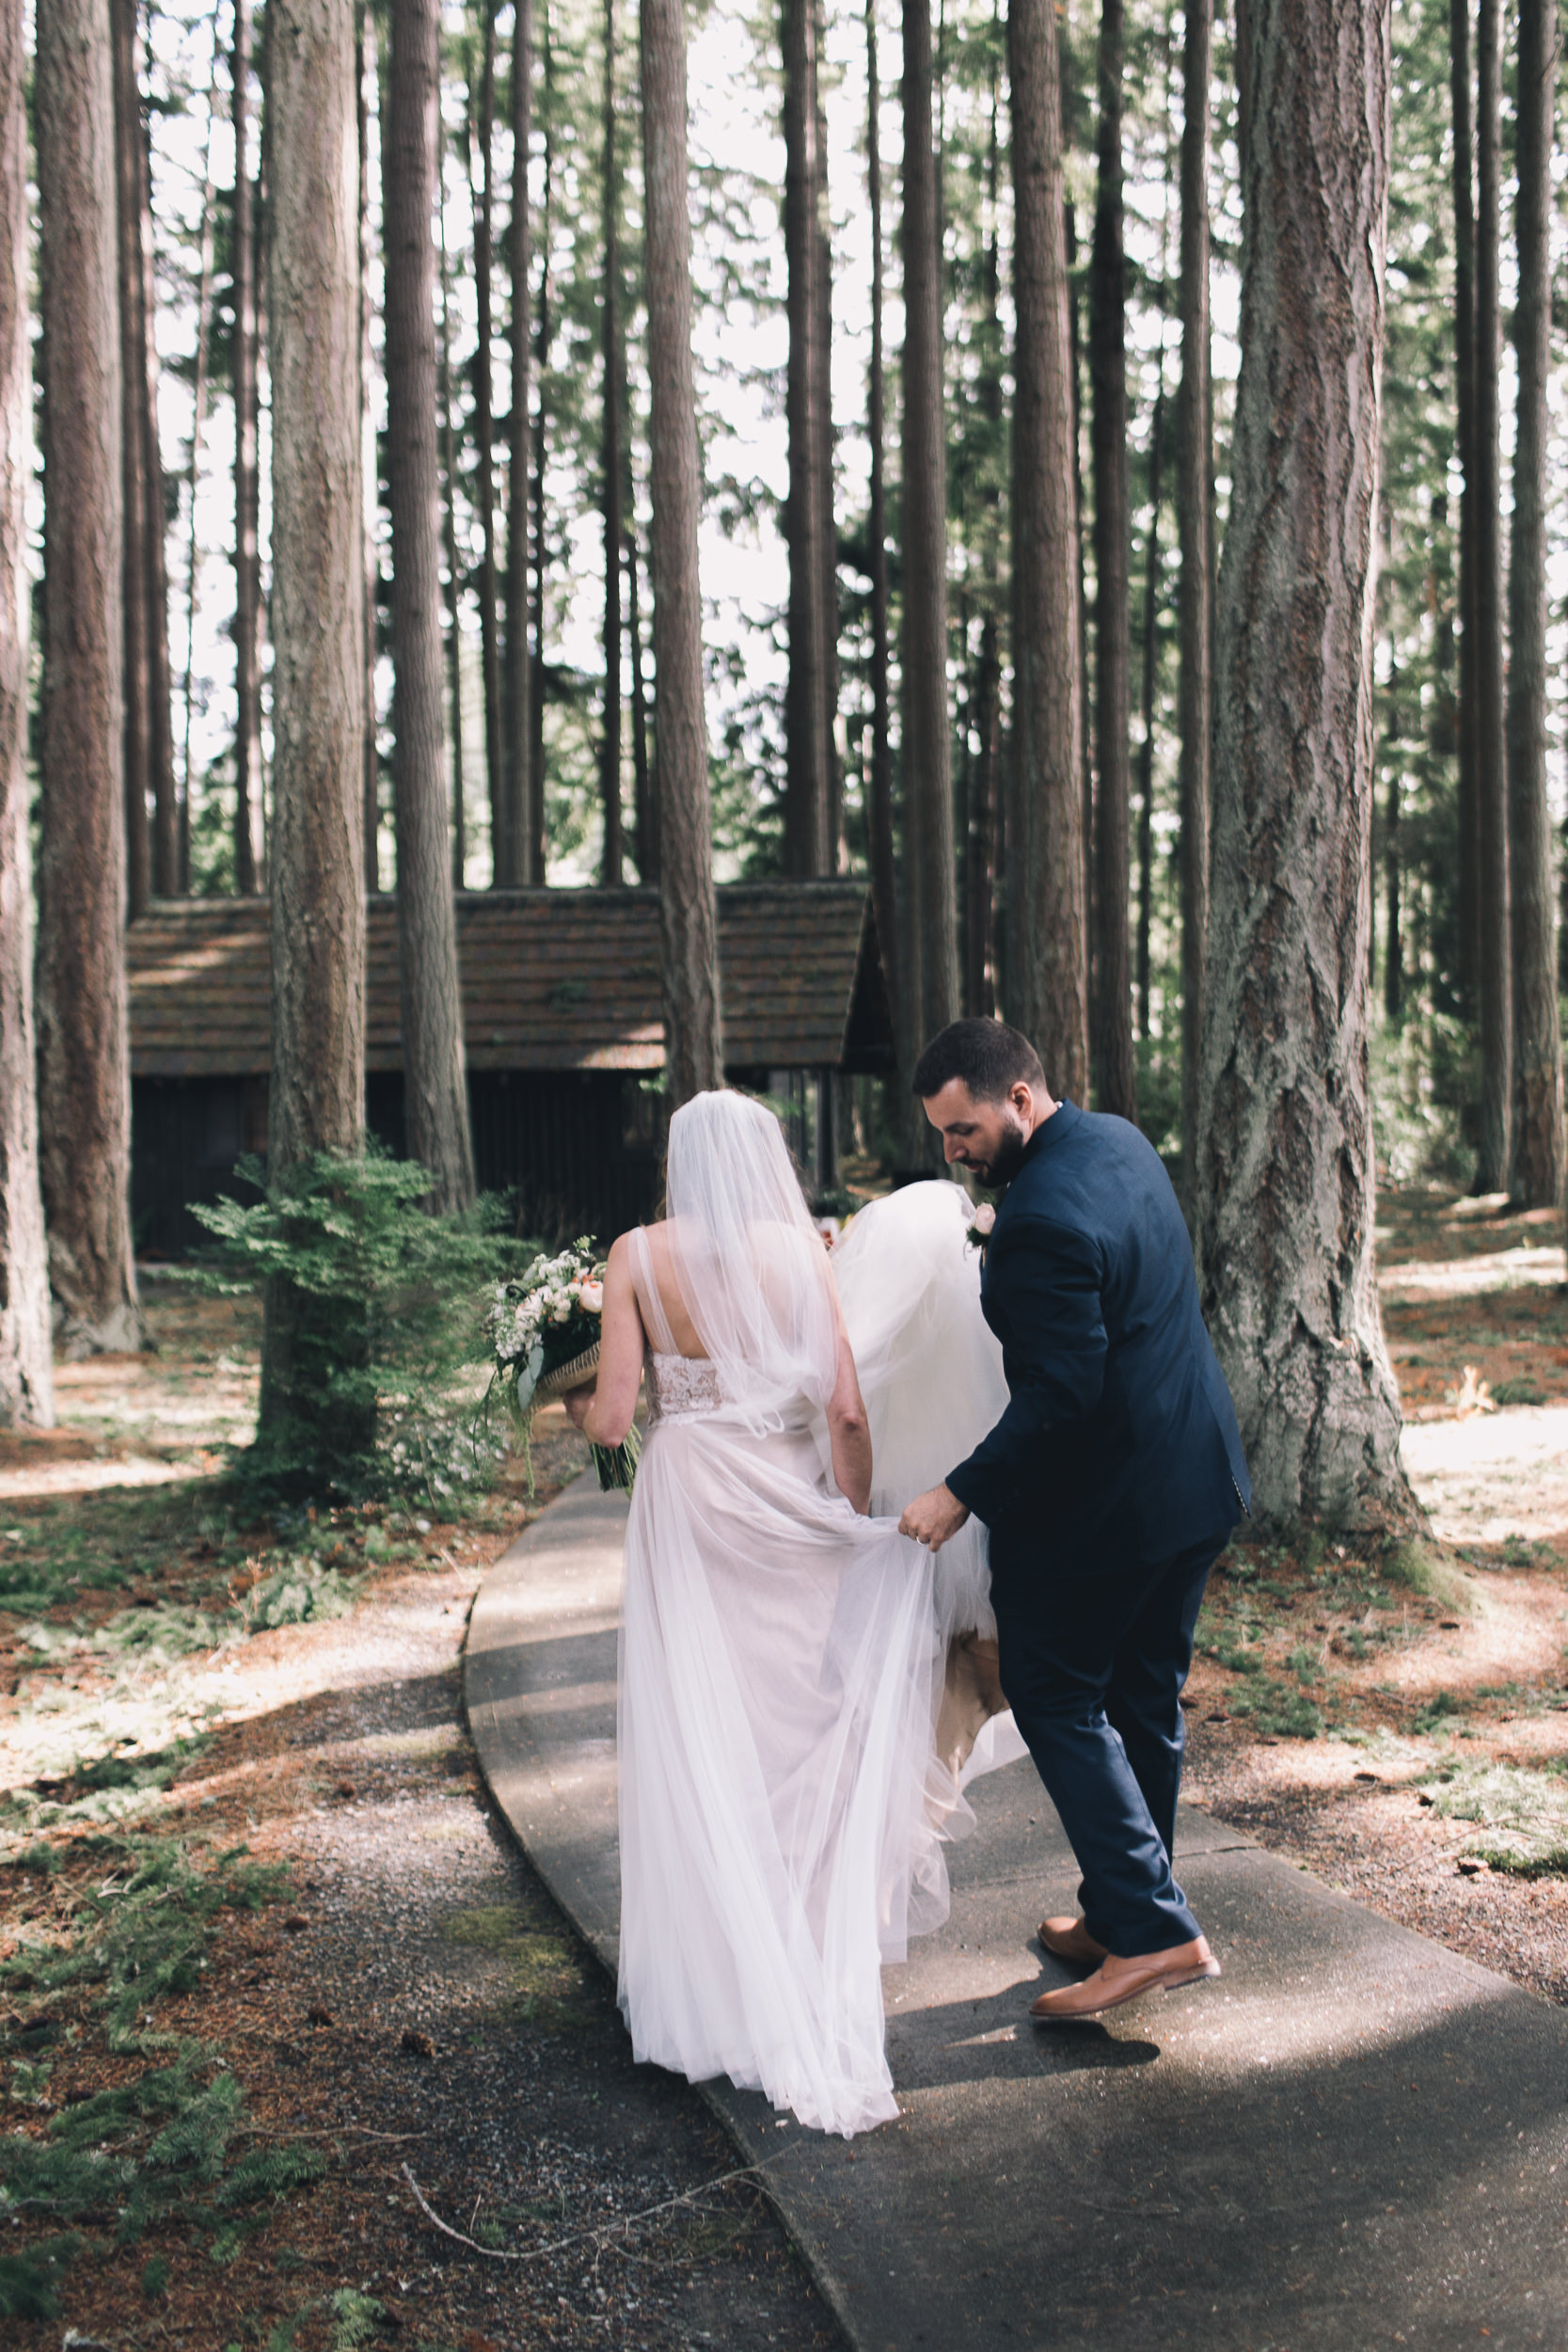 tall trees at kitsap memorial state park with bride and groom walking